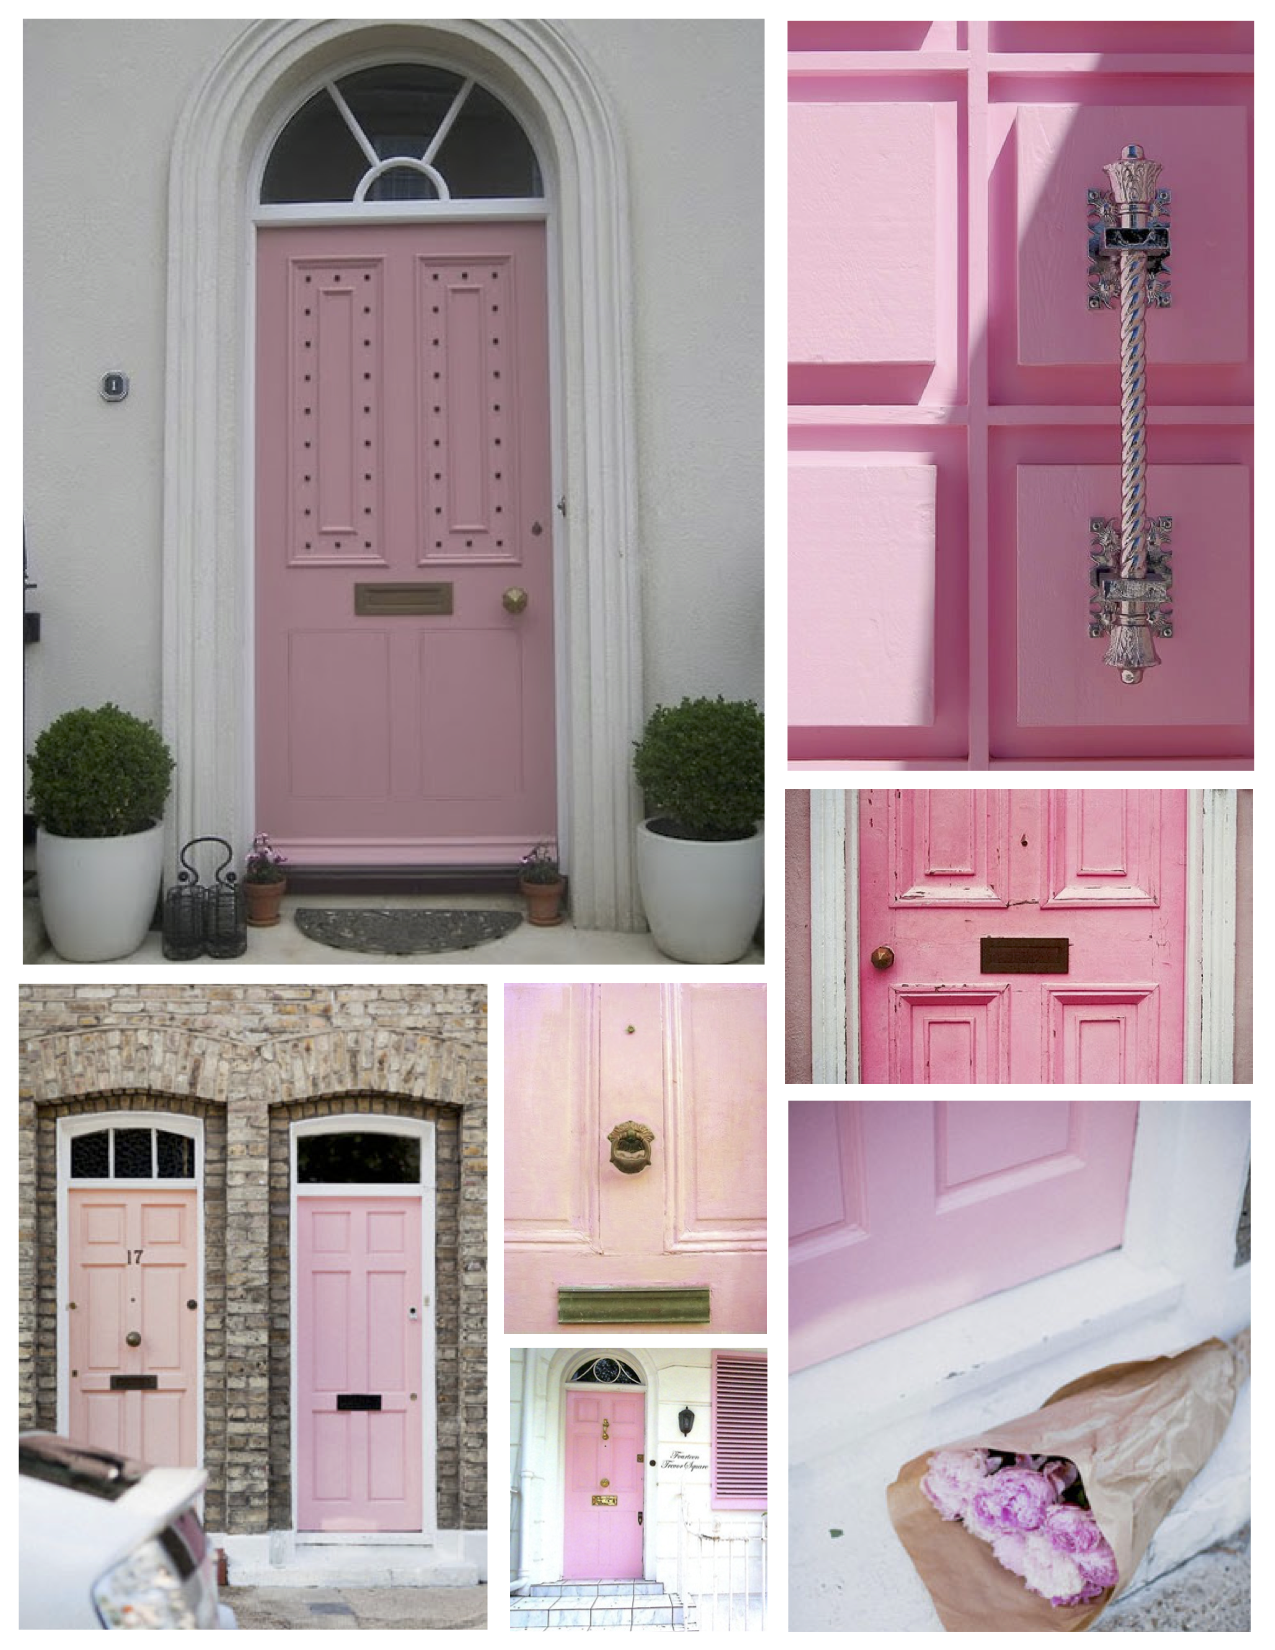 Pastel Bliss: The Front Door Layered In Soft Hues Of Pink